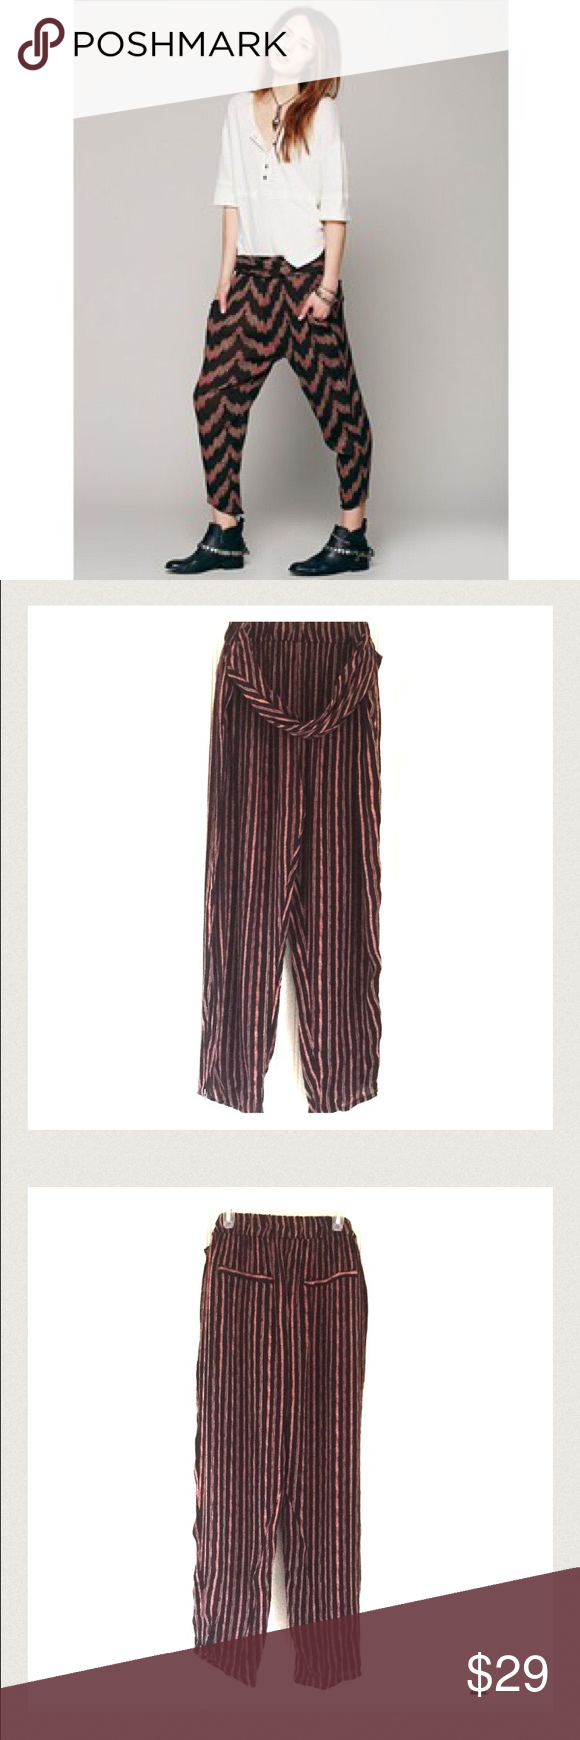 FREE PEOPLE - harem pants NWOT Printed crinkly rayon viscose pants with elastic waistband. Twisted bands drape off the hips over the front of the pants. Two back pockets. Zippers at ankle. Never worn. Made in India Free People Pants Ankle & Cropped